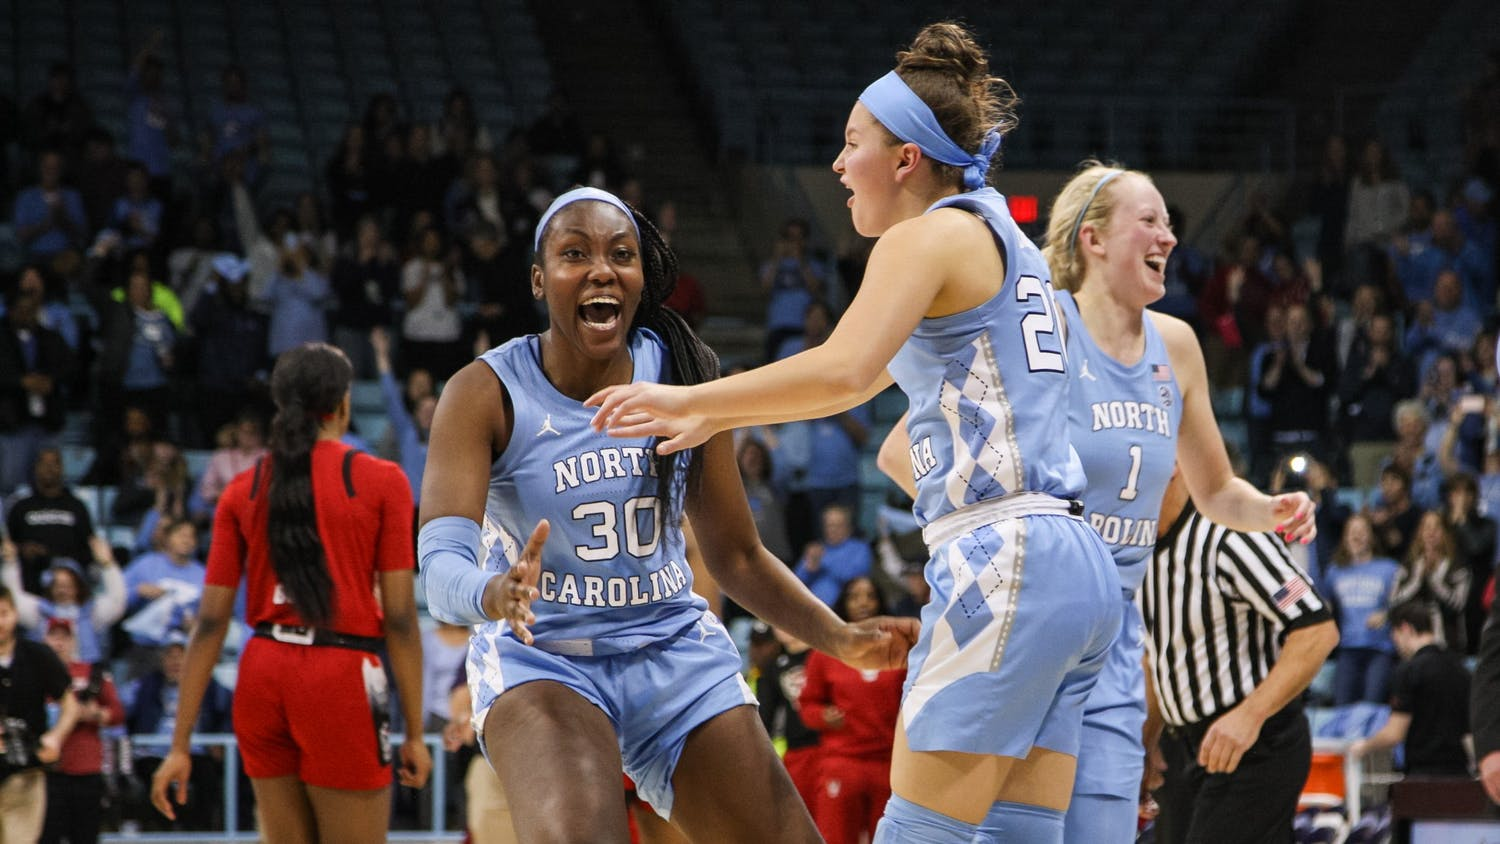 UNC players Janelle Bailey (30), Leah Church (20), and Taylor Koenen (1) celebrate UNC's win over N.C. State on Thursday, Jan. 9, 2020. UNC broke NC State's undefeated streak with a score of 66-60.